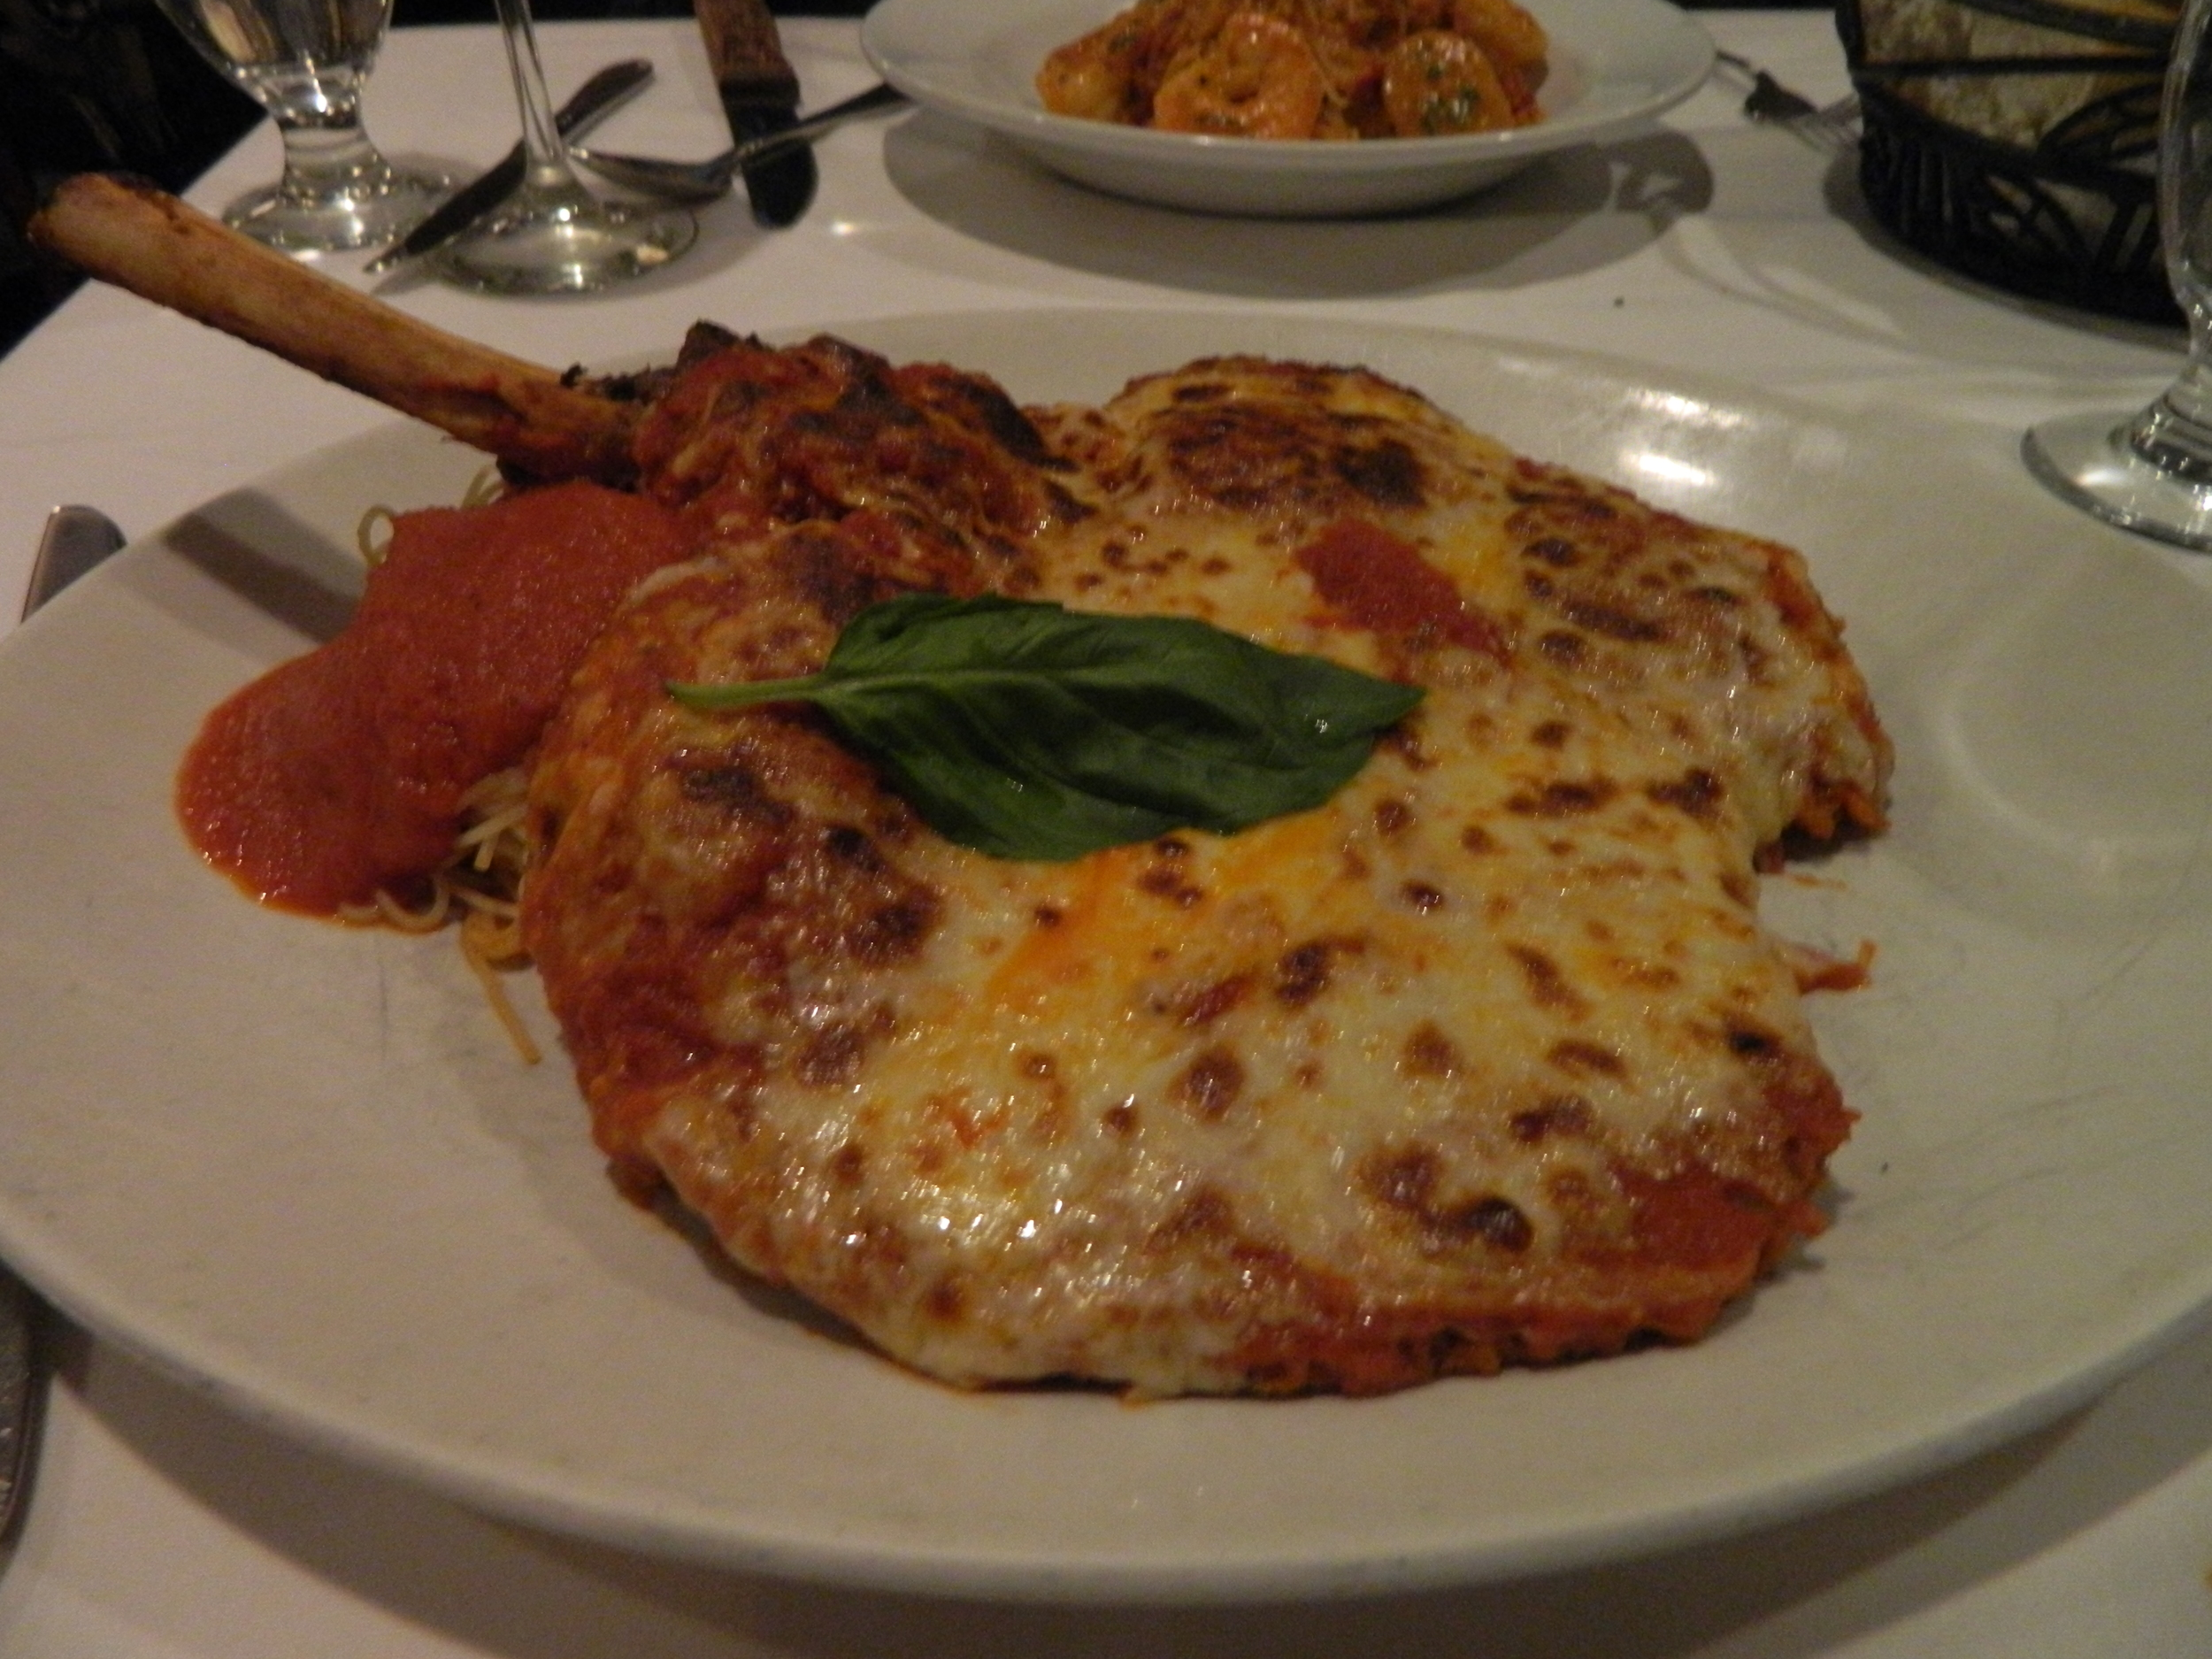 The Costoletta Di Vitello Alla Parmigiana (pounded veal chop) is available on the lunch menu at Cirella's in Melville.